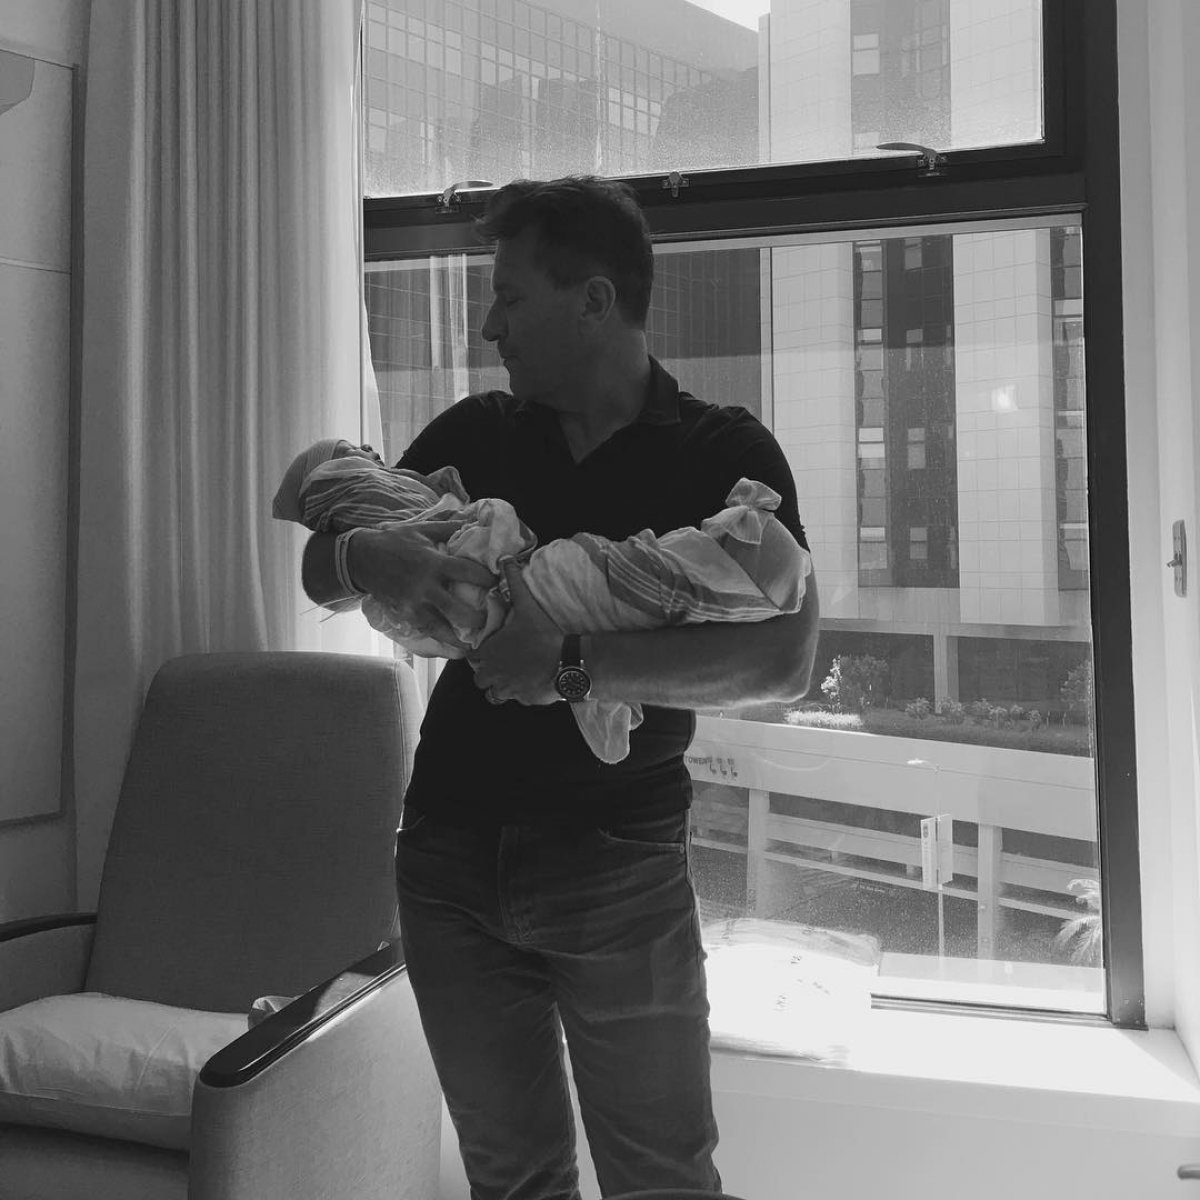 Story Dancing With The Stars Kym Johnson And Robert Herjavec Welcome Twins: Kym Johnson And Robert Herjavec Welcome Twin Babies